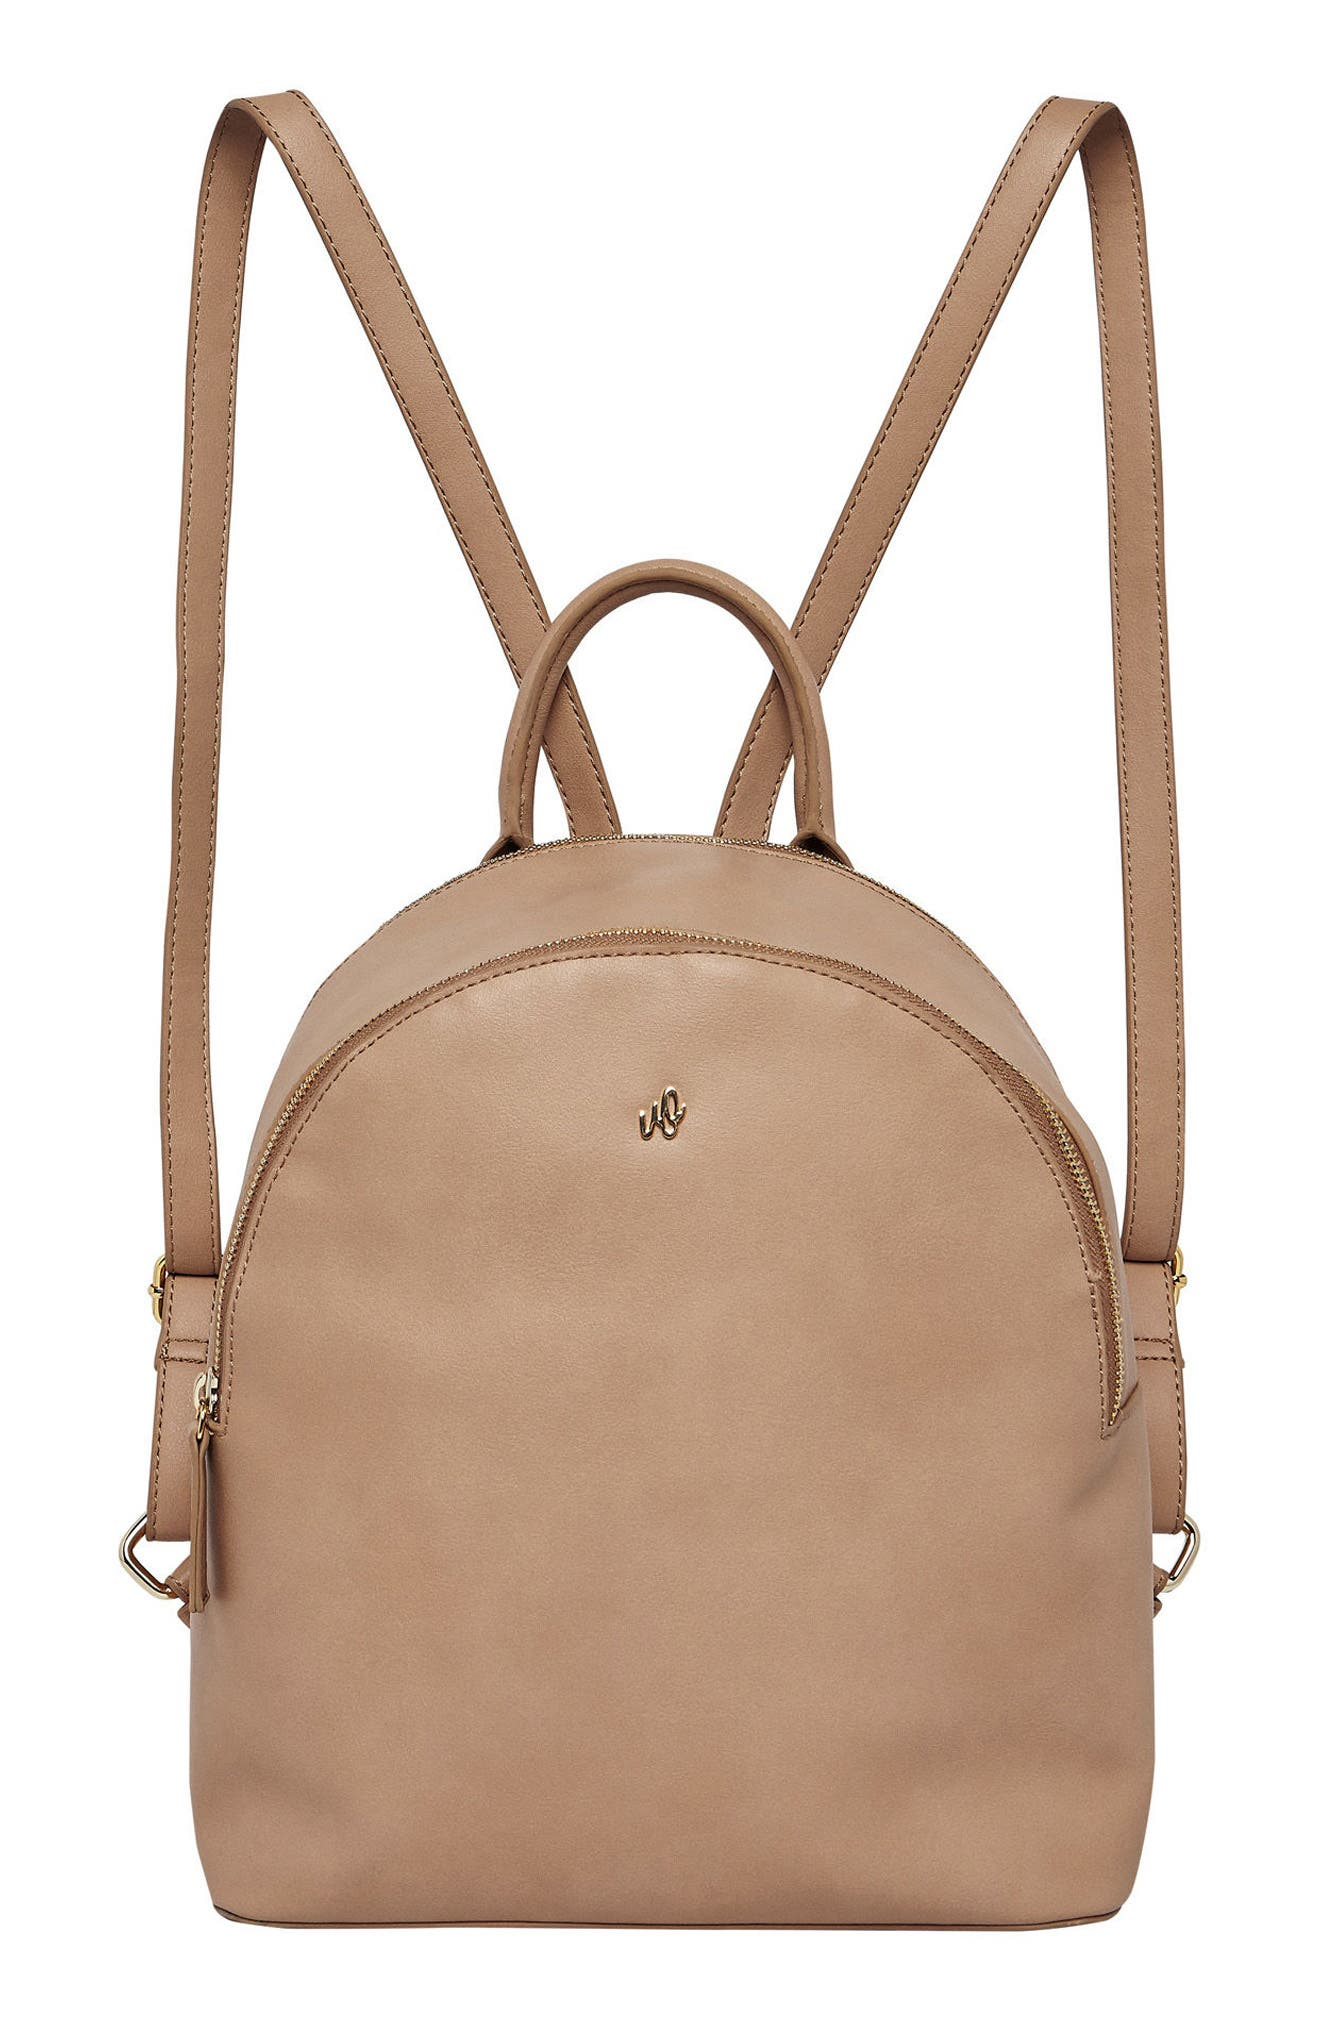 Magic Vegan Leather Backpack,                             Main thumbnail 1, color,                             CAMEL